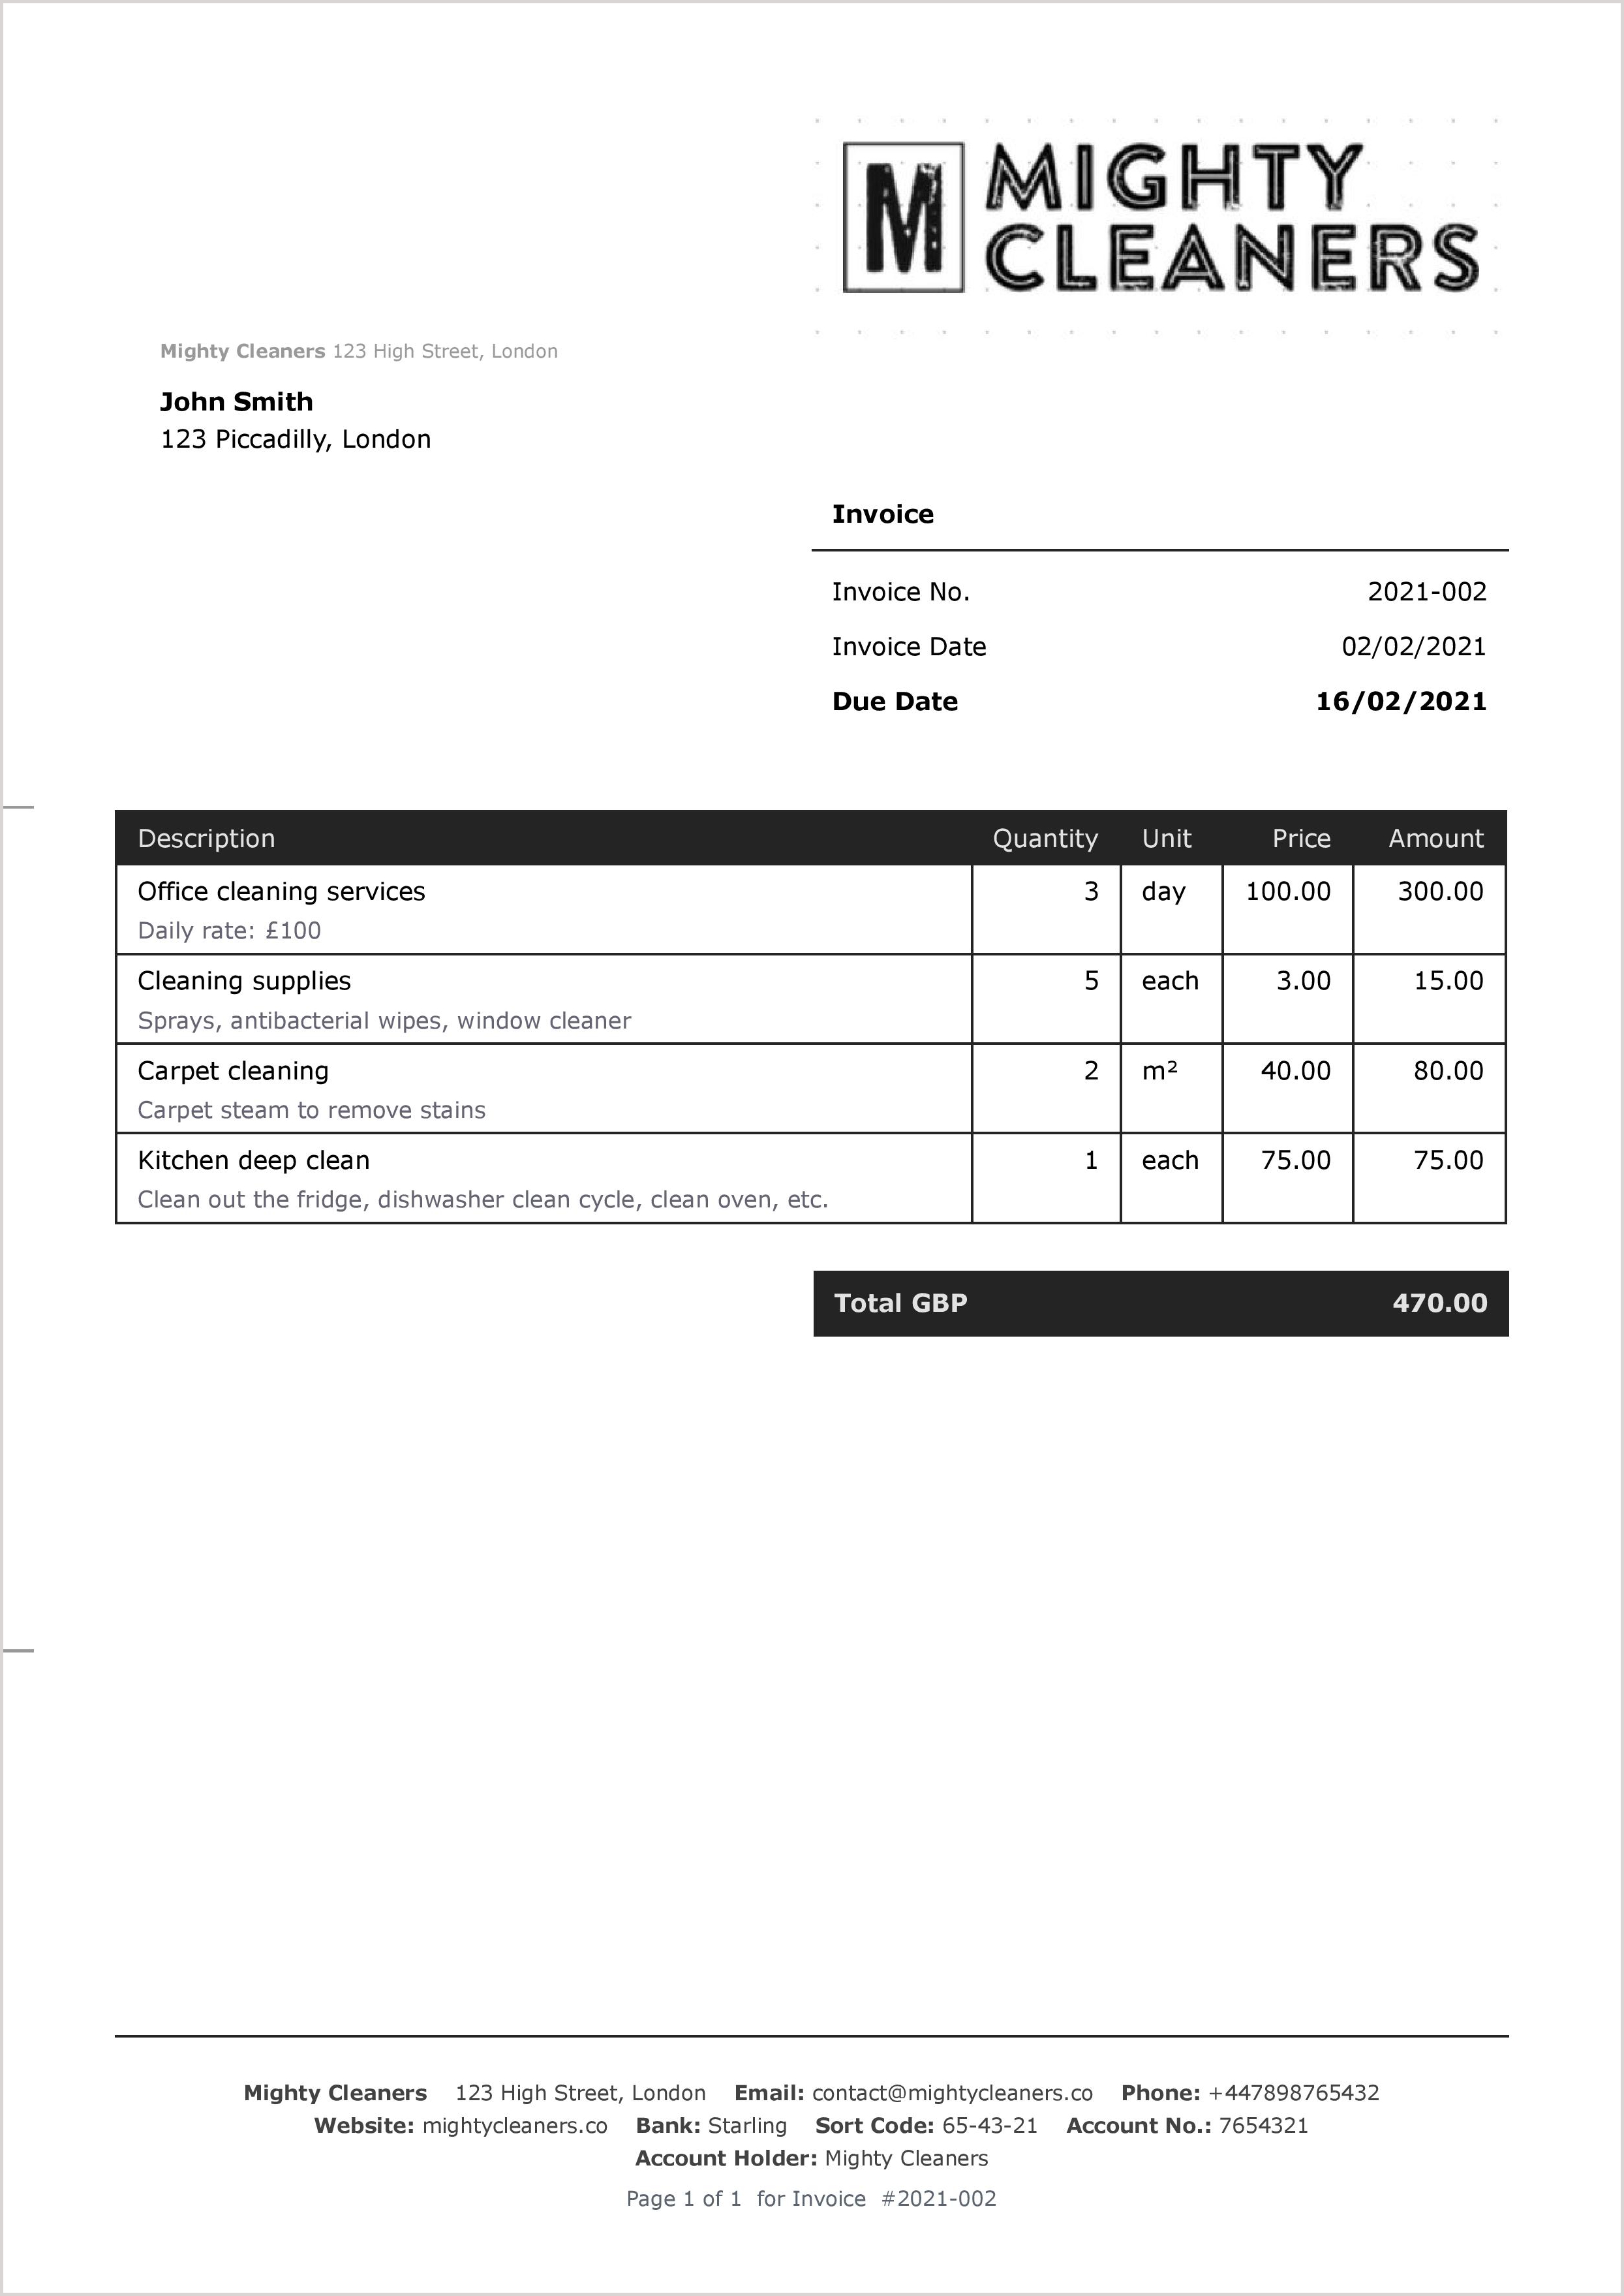 Invoice Templates For Cleaning Services Sumup Invoices